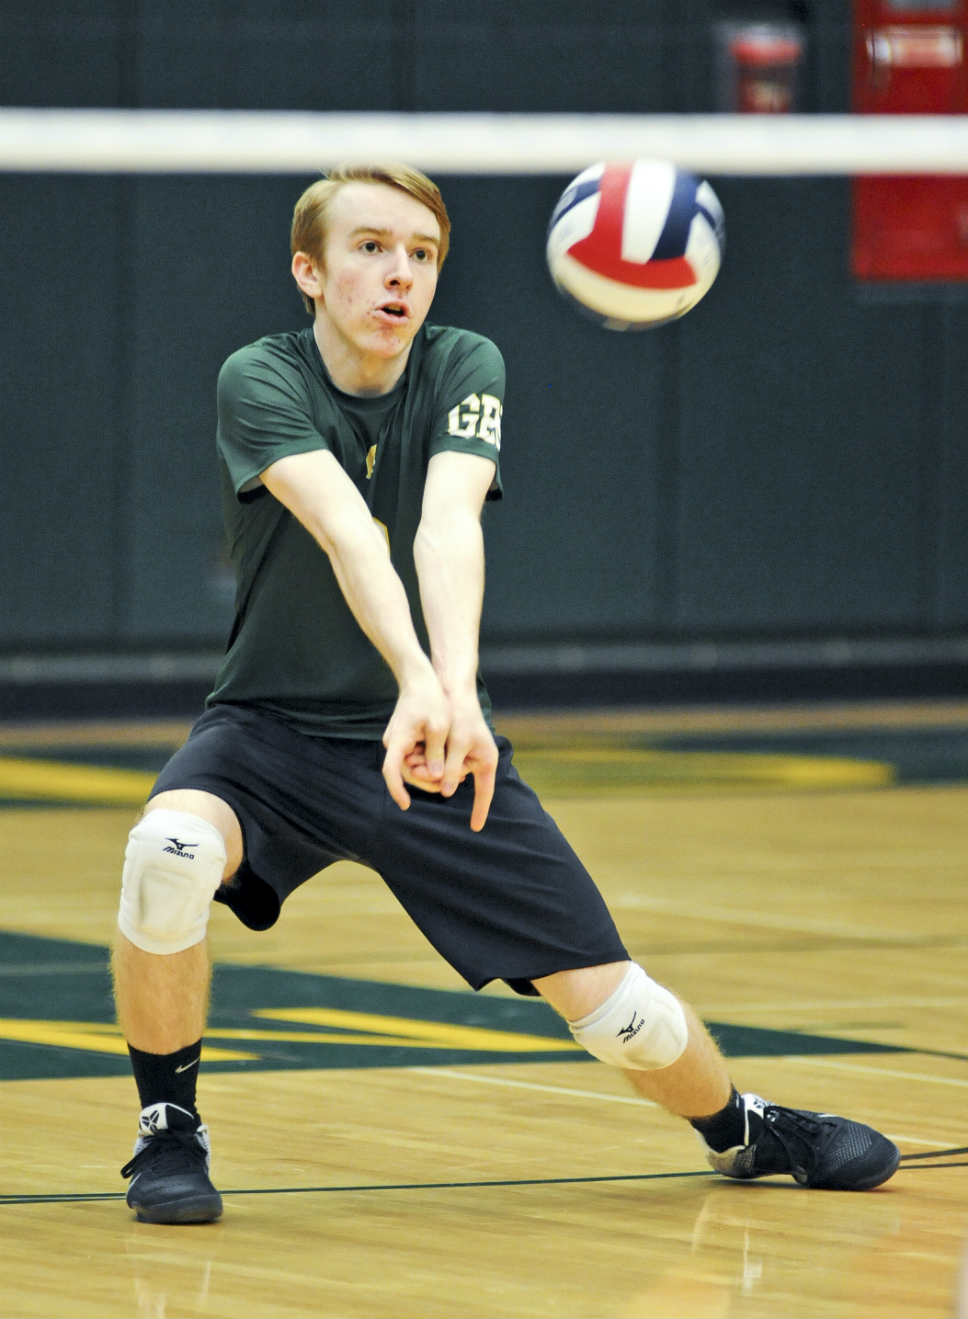 GBN_Boy_Volleyball_04ss